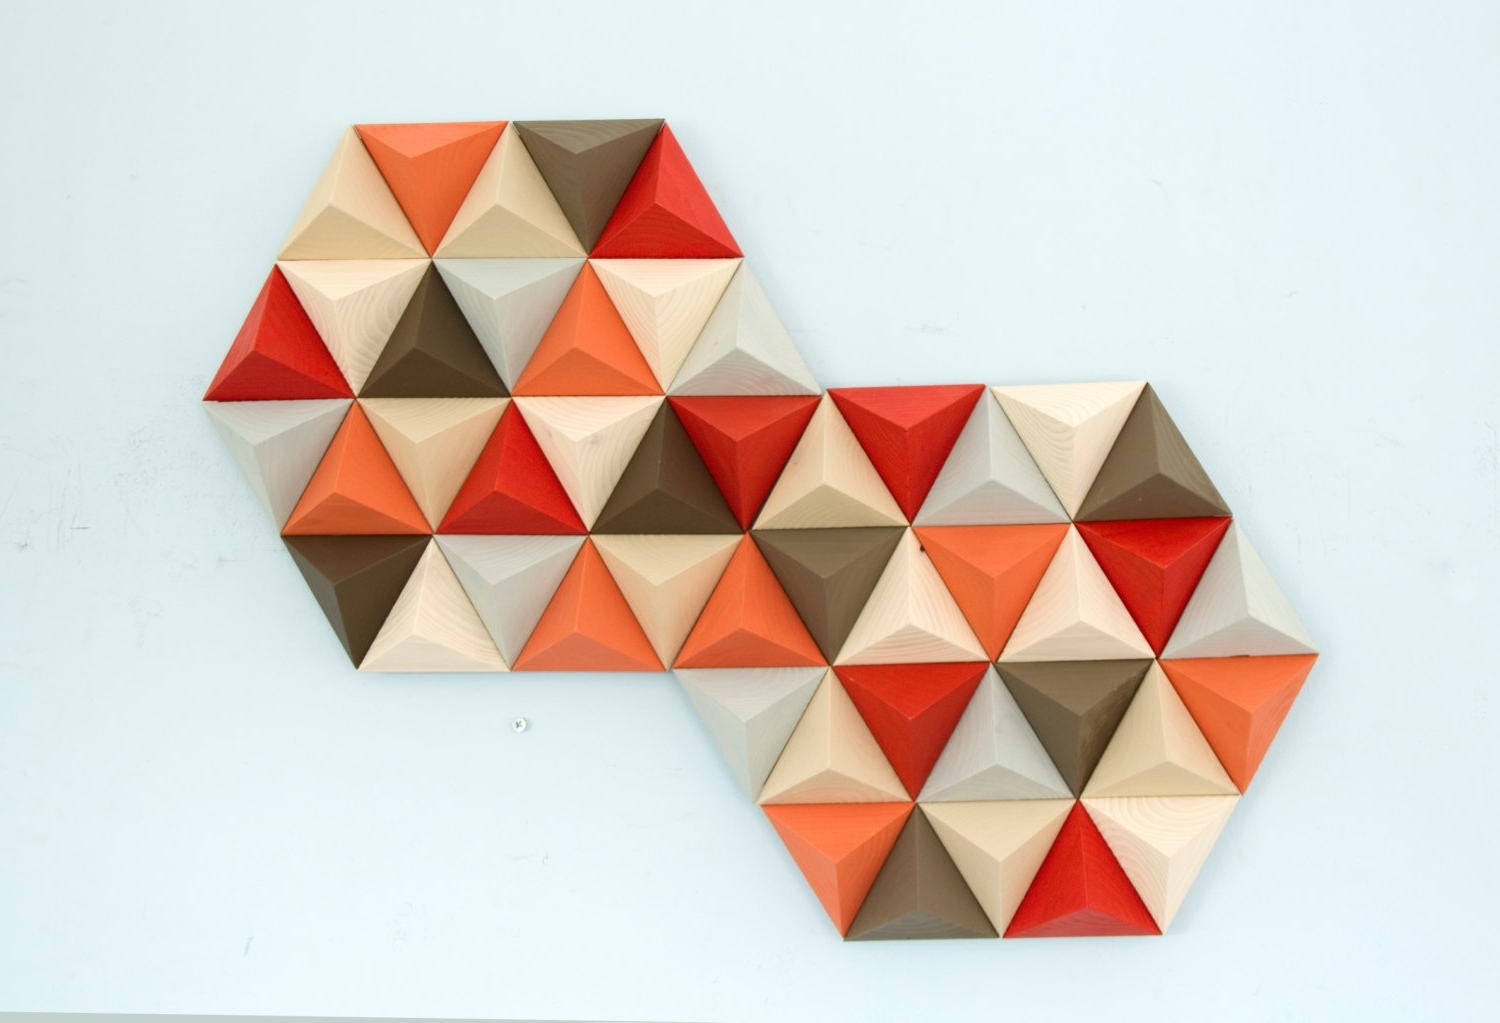 Popular Wood Wall Art Geometric, Hexagon, Mid Century Wall Art, Sale Unique With Regard To Geometric Wall Art (View 14 of 20)